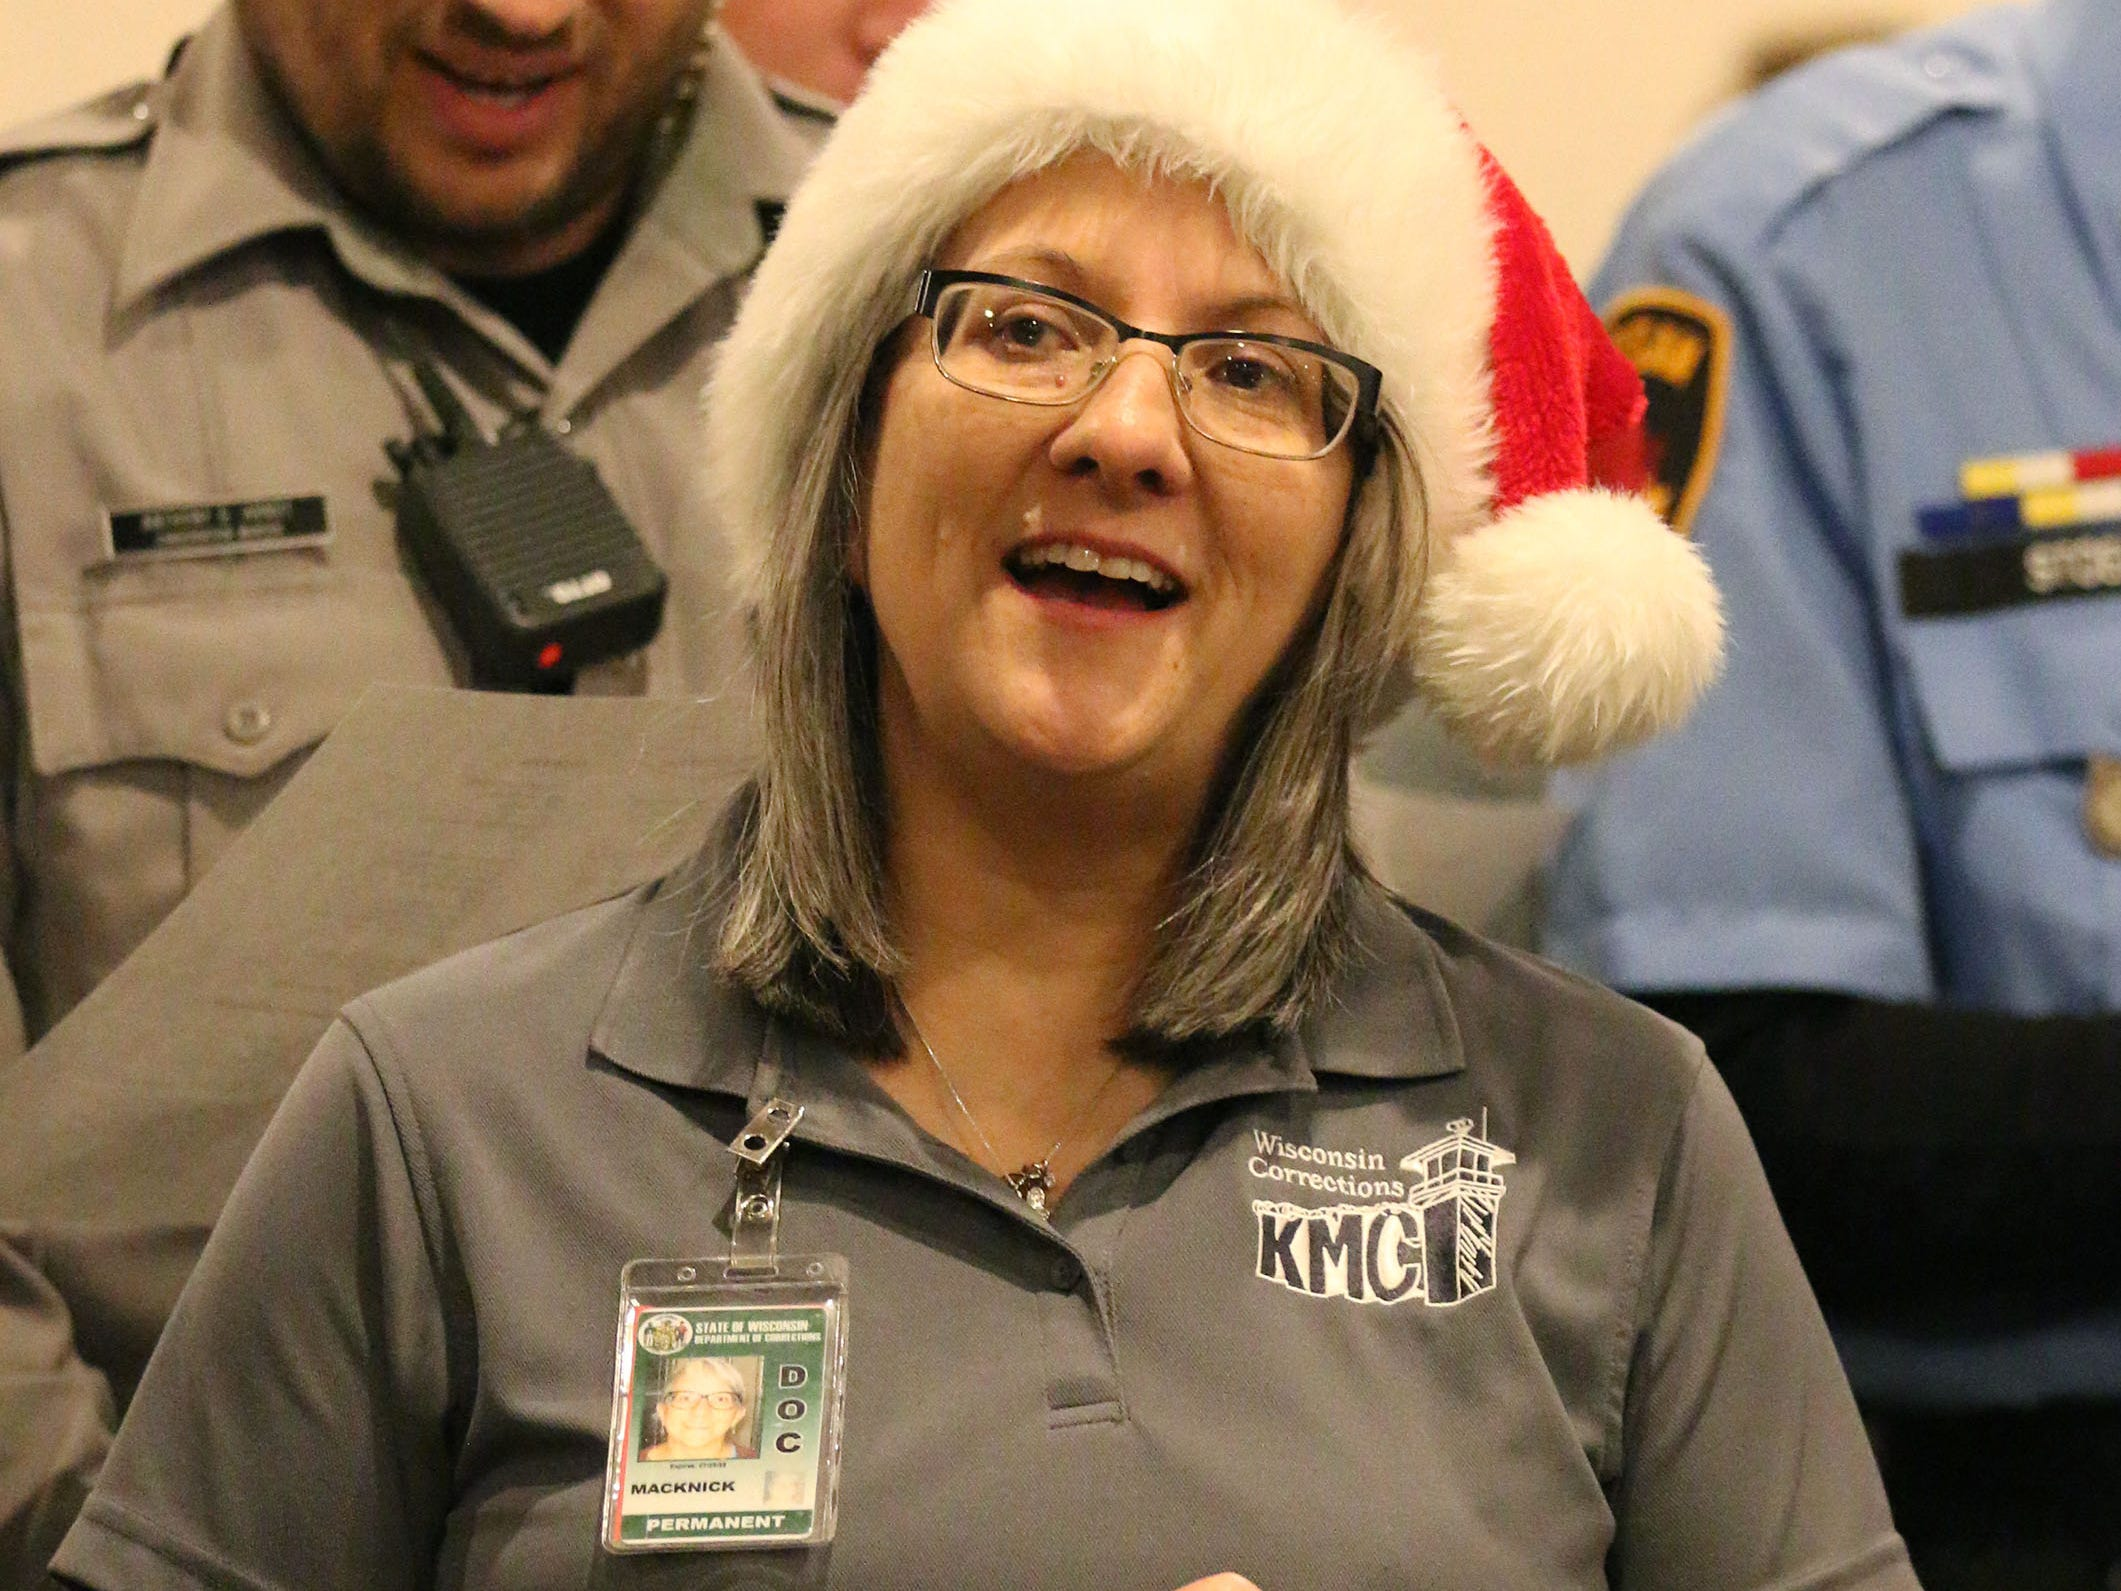 Kettle Moraine Correctional Institute social worker Betty Macknick belts out Rudolph the Red-Nosed Reindeer during the start of Shop with a copy at Lakeshore Lanes, Tuesday, December 4, 2018, in Sheboygan, Wis. The program, in its 21st year, raises funds to give children a chance to buy holiday gifts that they otherwise might not receive.